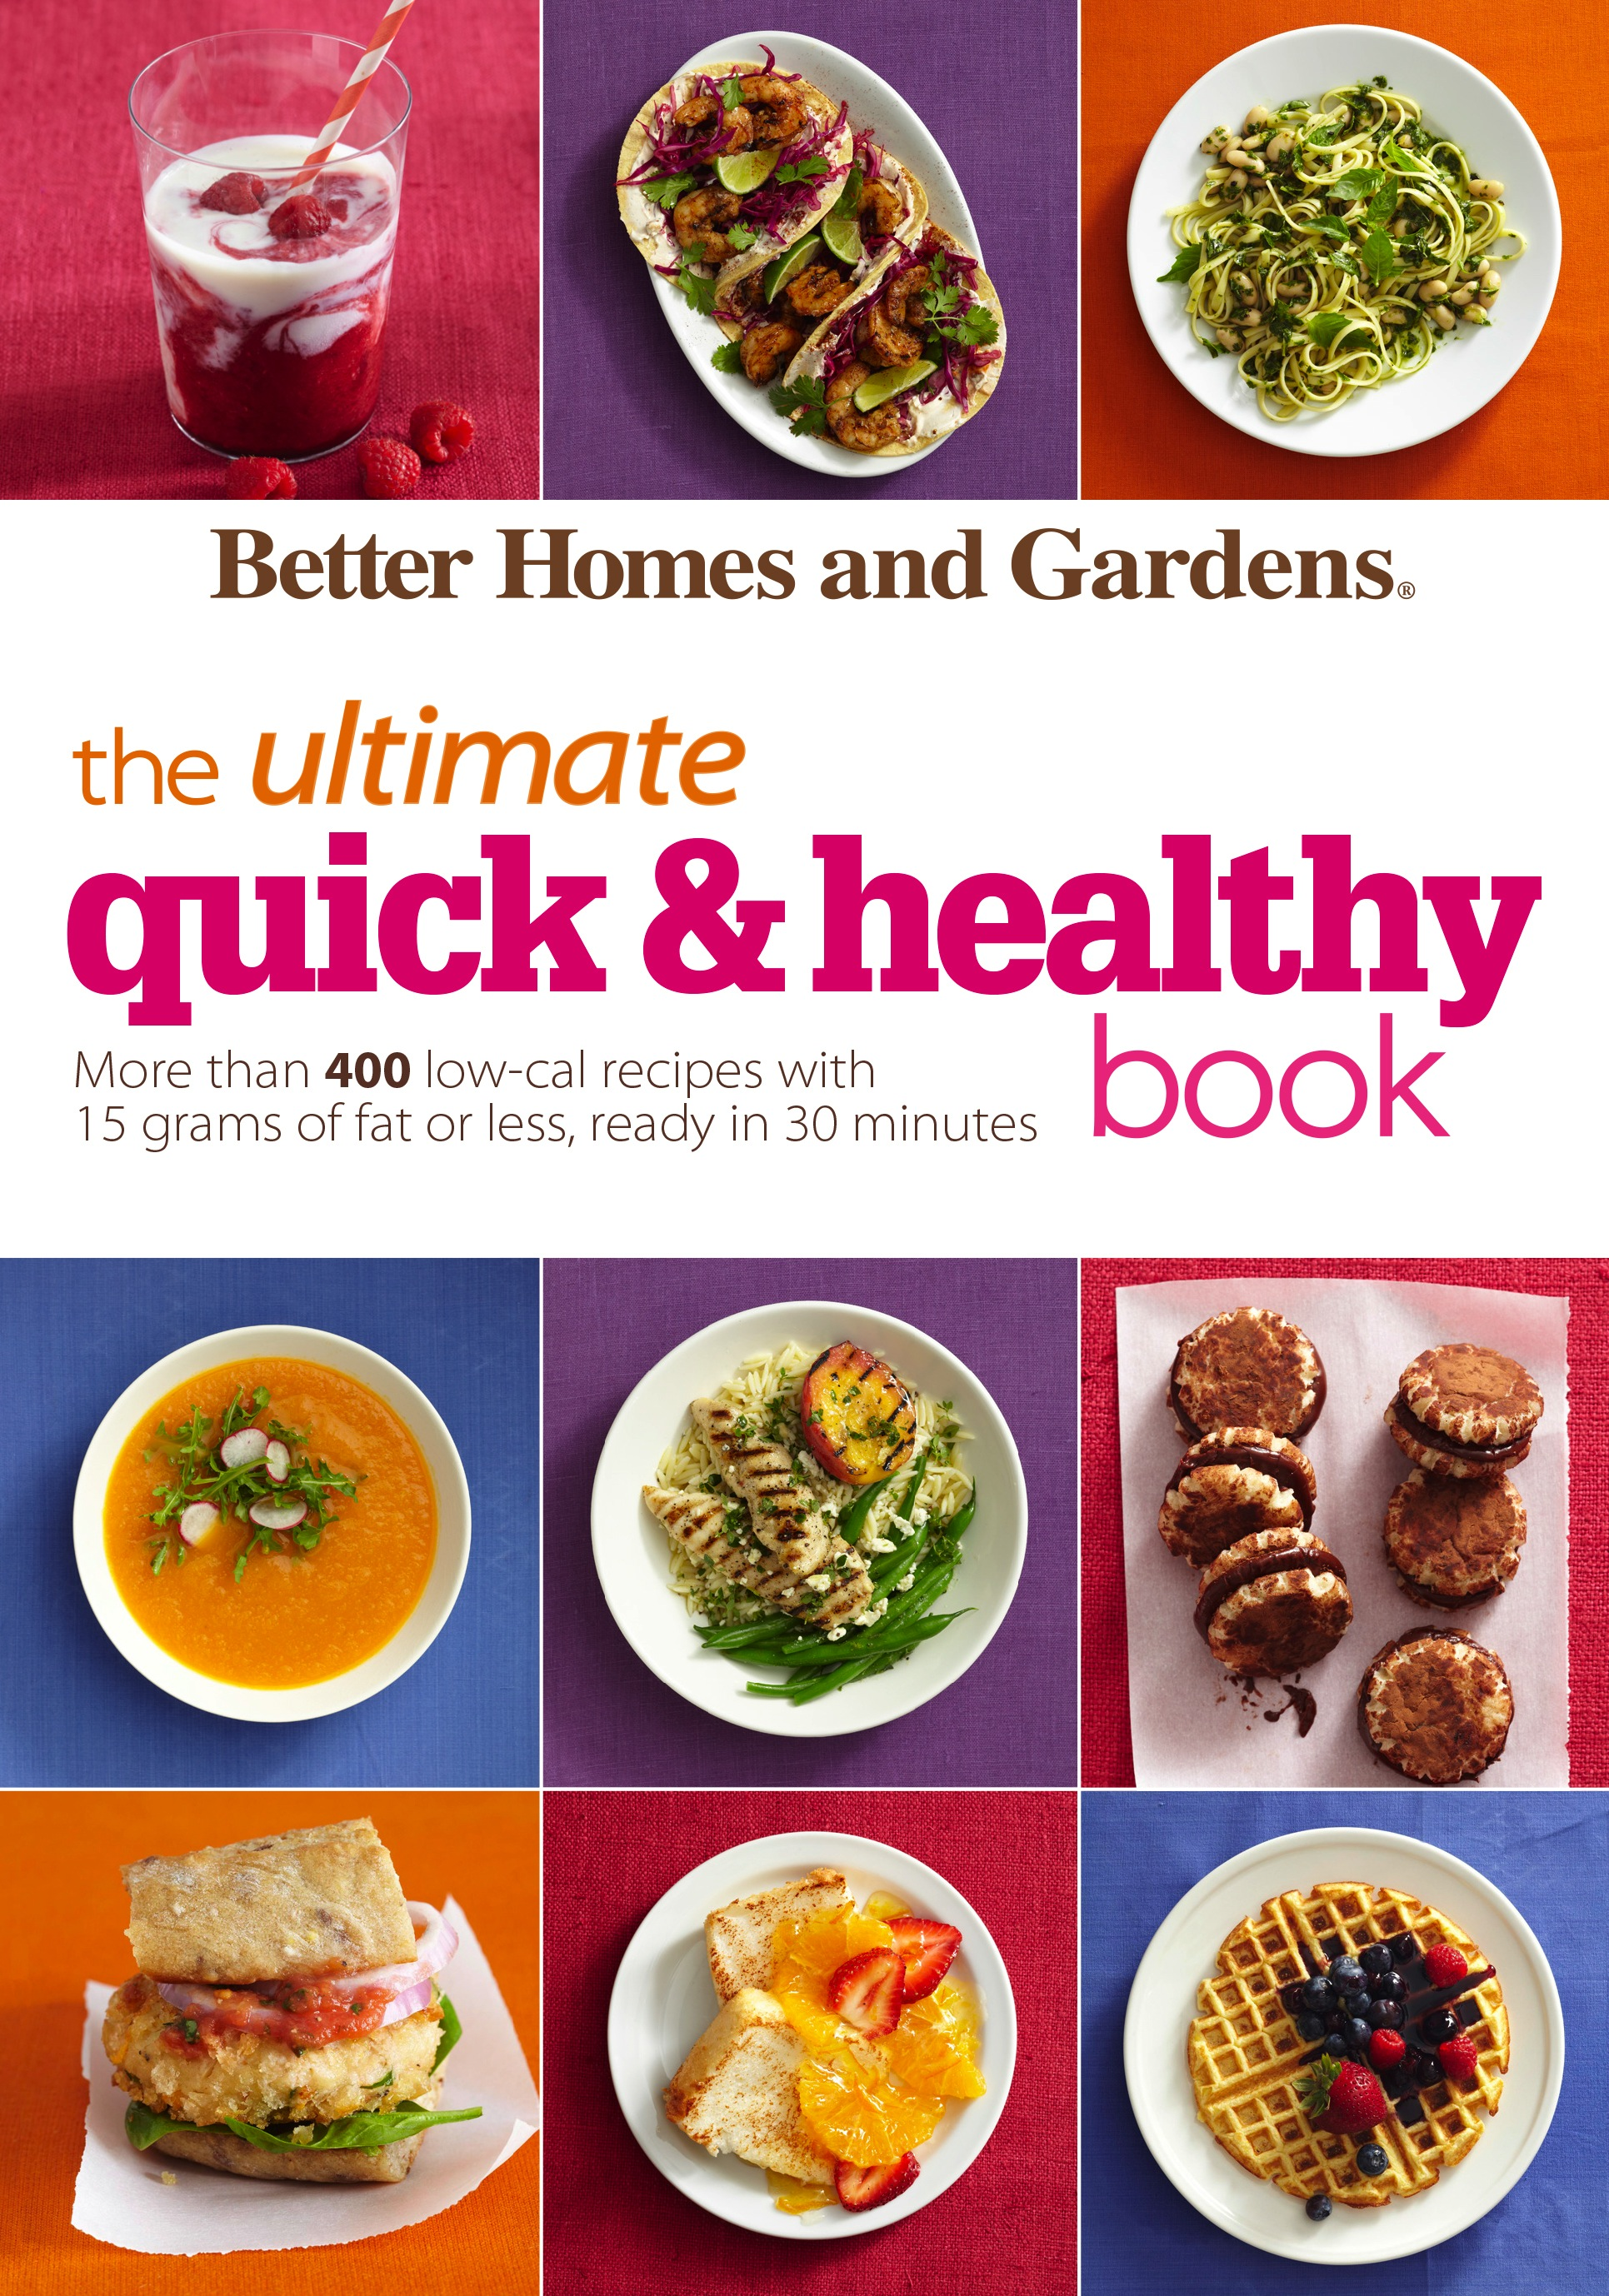 Cover image for Better Homes and Gardens The Ultimate Quick & Healthy Book [electronic resource] : More Than 400 Low-Cal Recipes with 15 Grams of Fat or Less, Ready in 30 Minutes